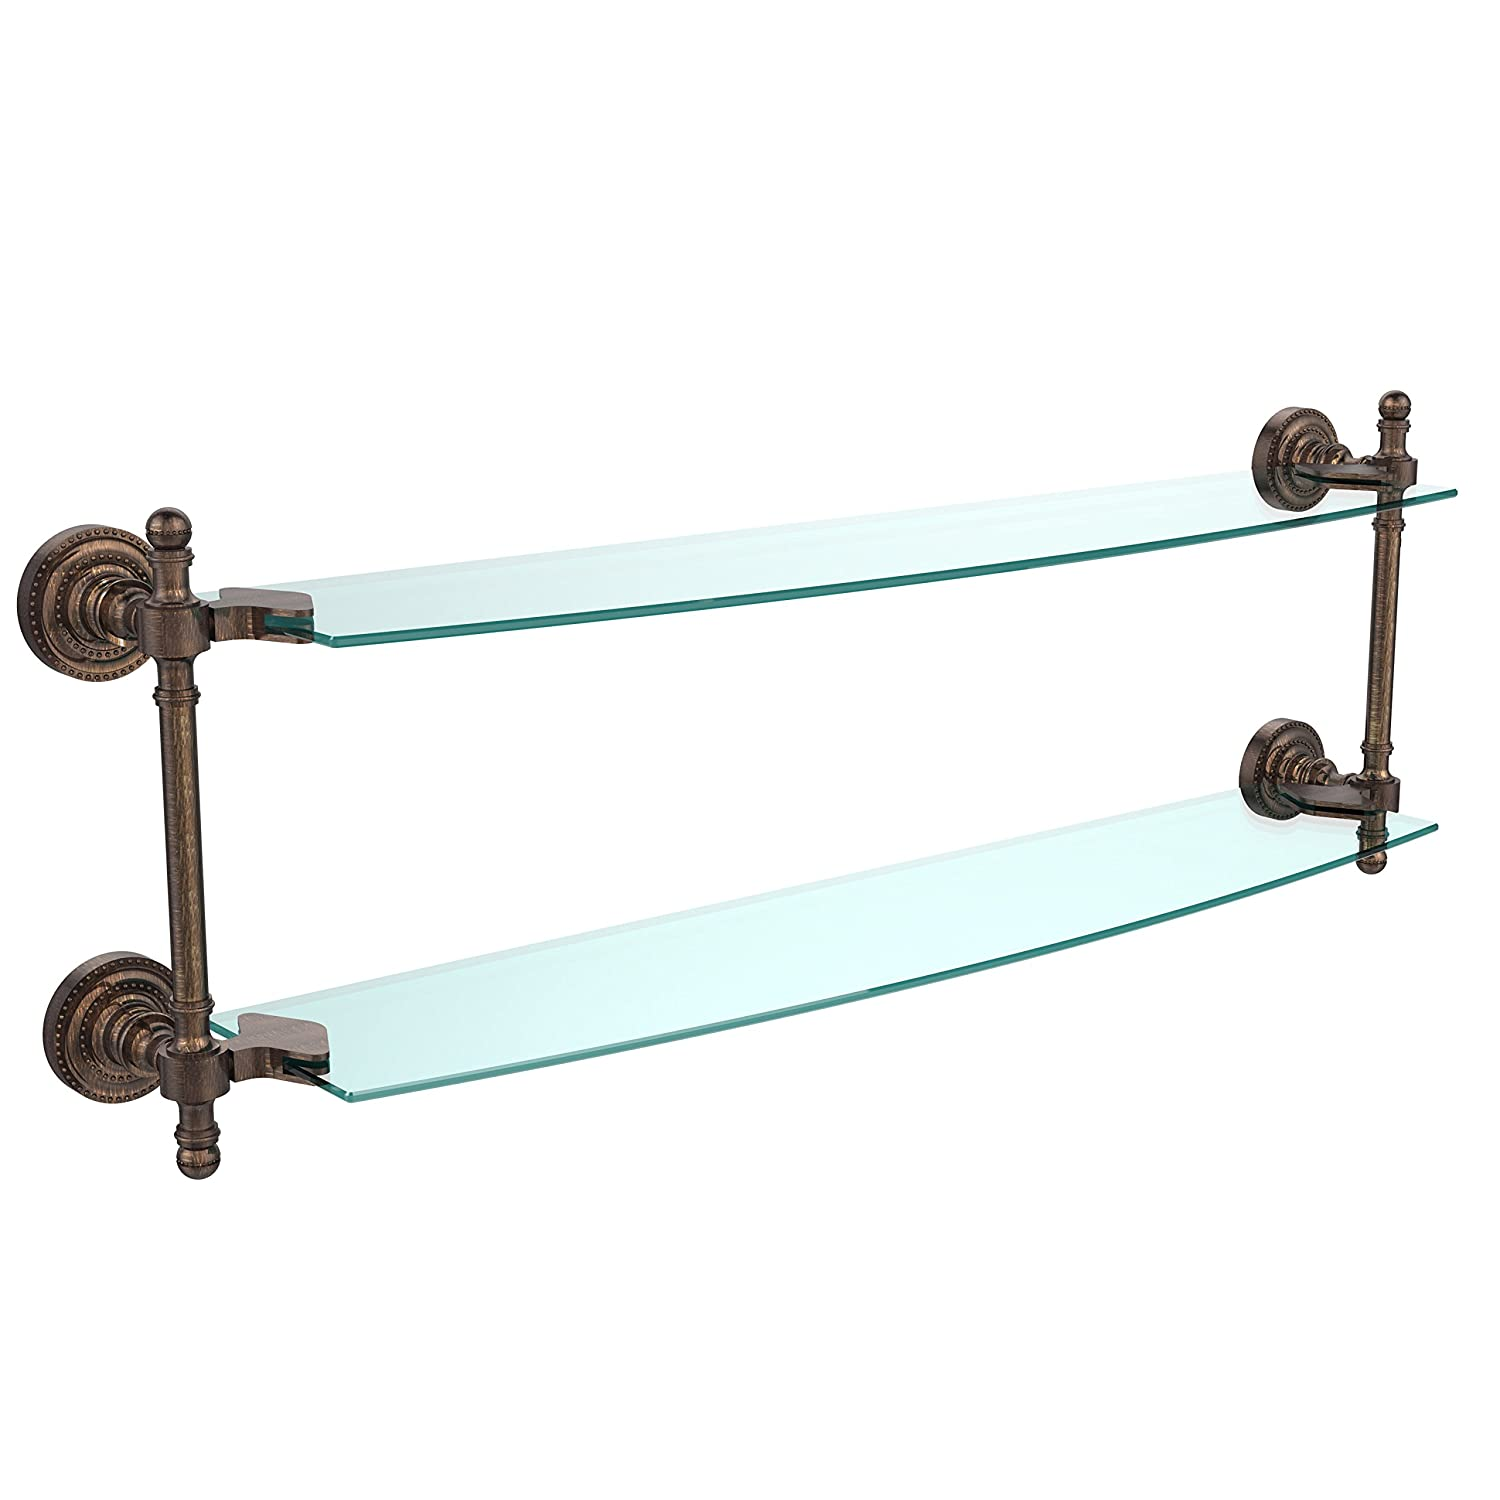 Allied Brass RD-34//18-CA Retro Dot Collection 18 Inch Two Tiered Glass Shelf Antique Copper